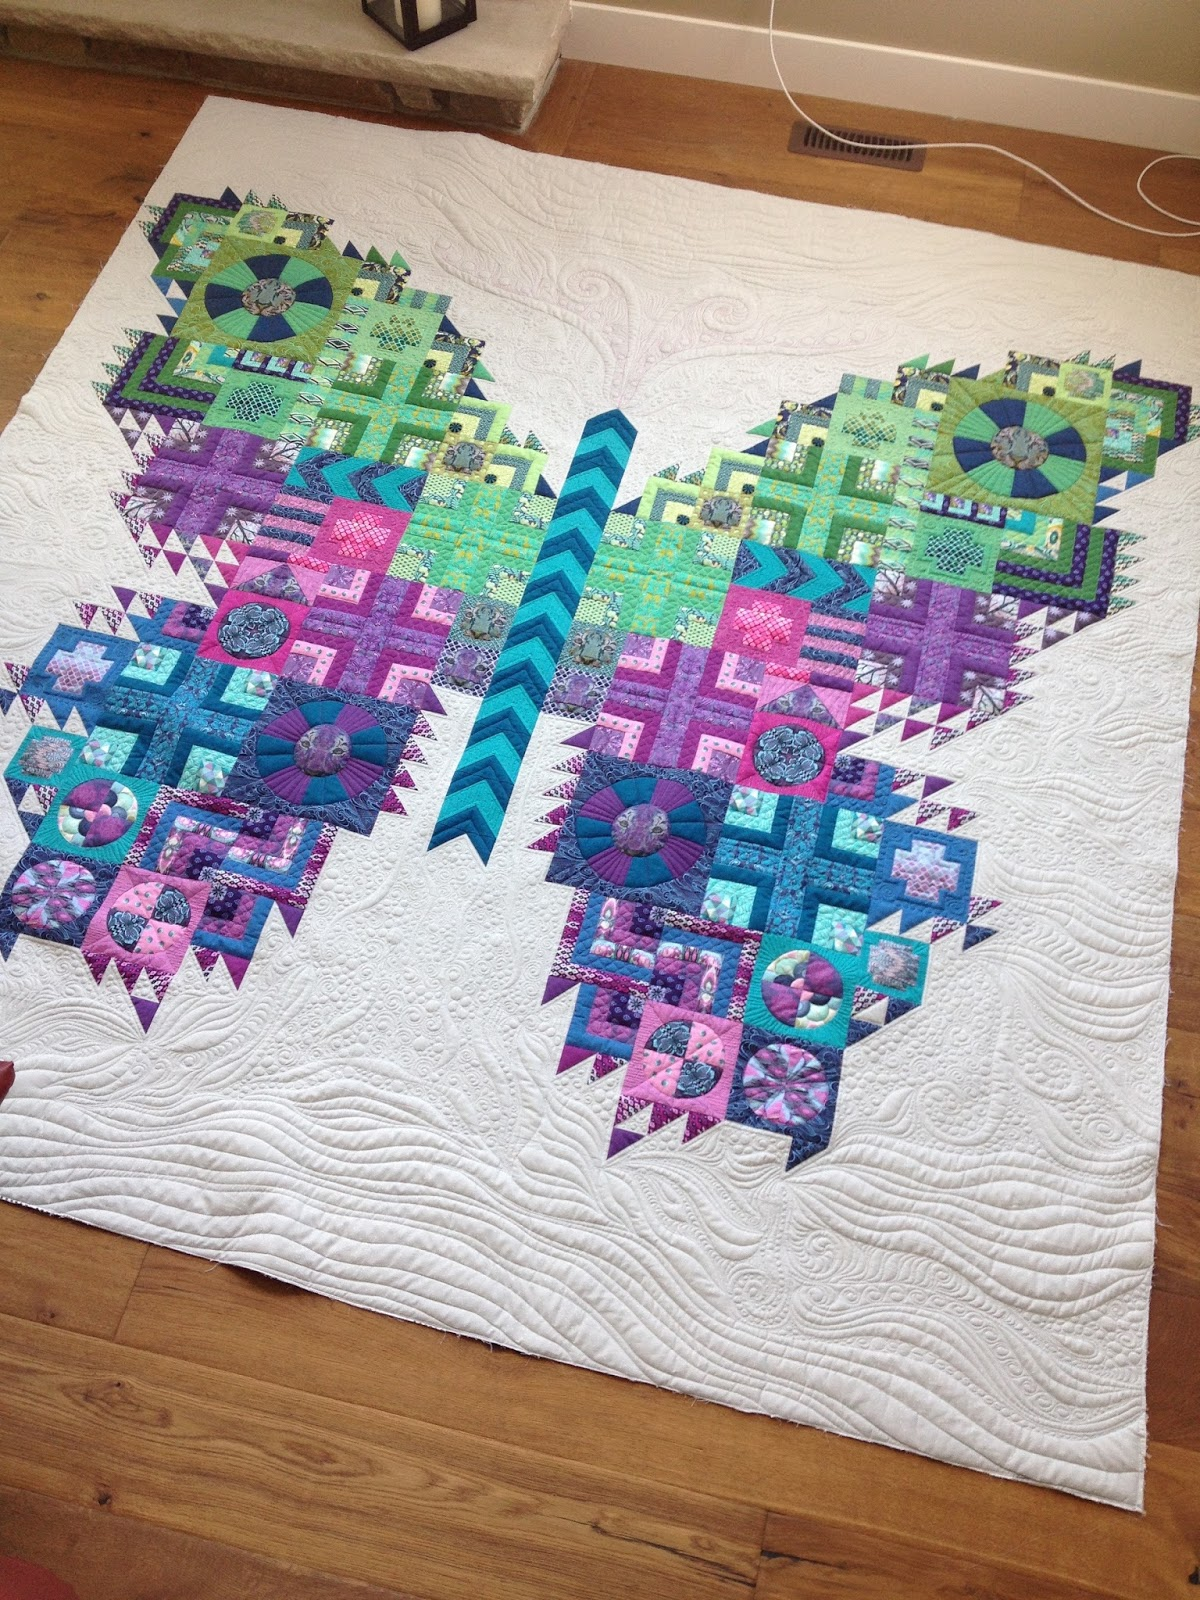 Urban Quiltworks: The Tula Pink Butterfly Quilt - pic heavy : quilt quilt quilt - Adamdwight.com